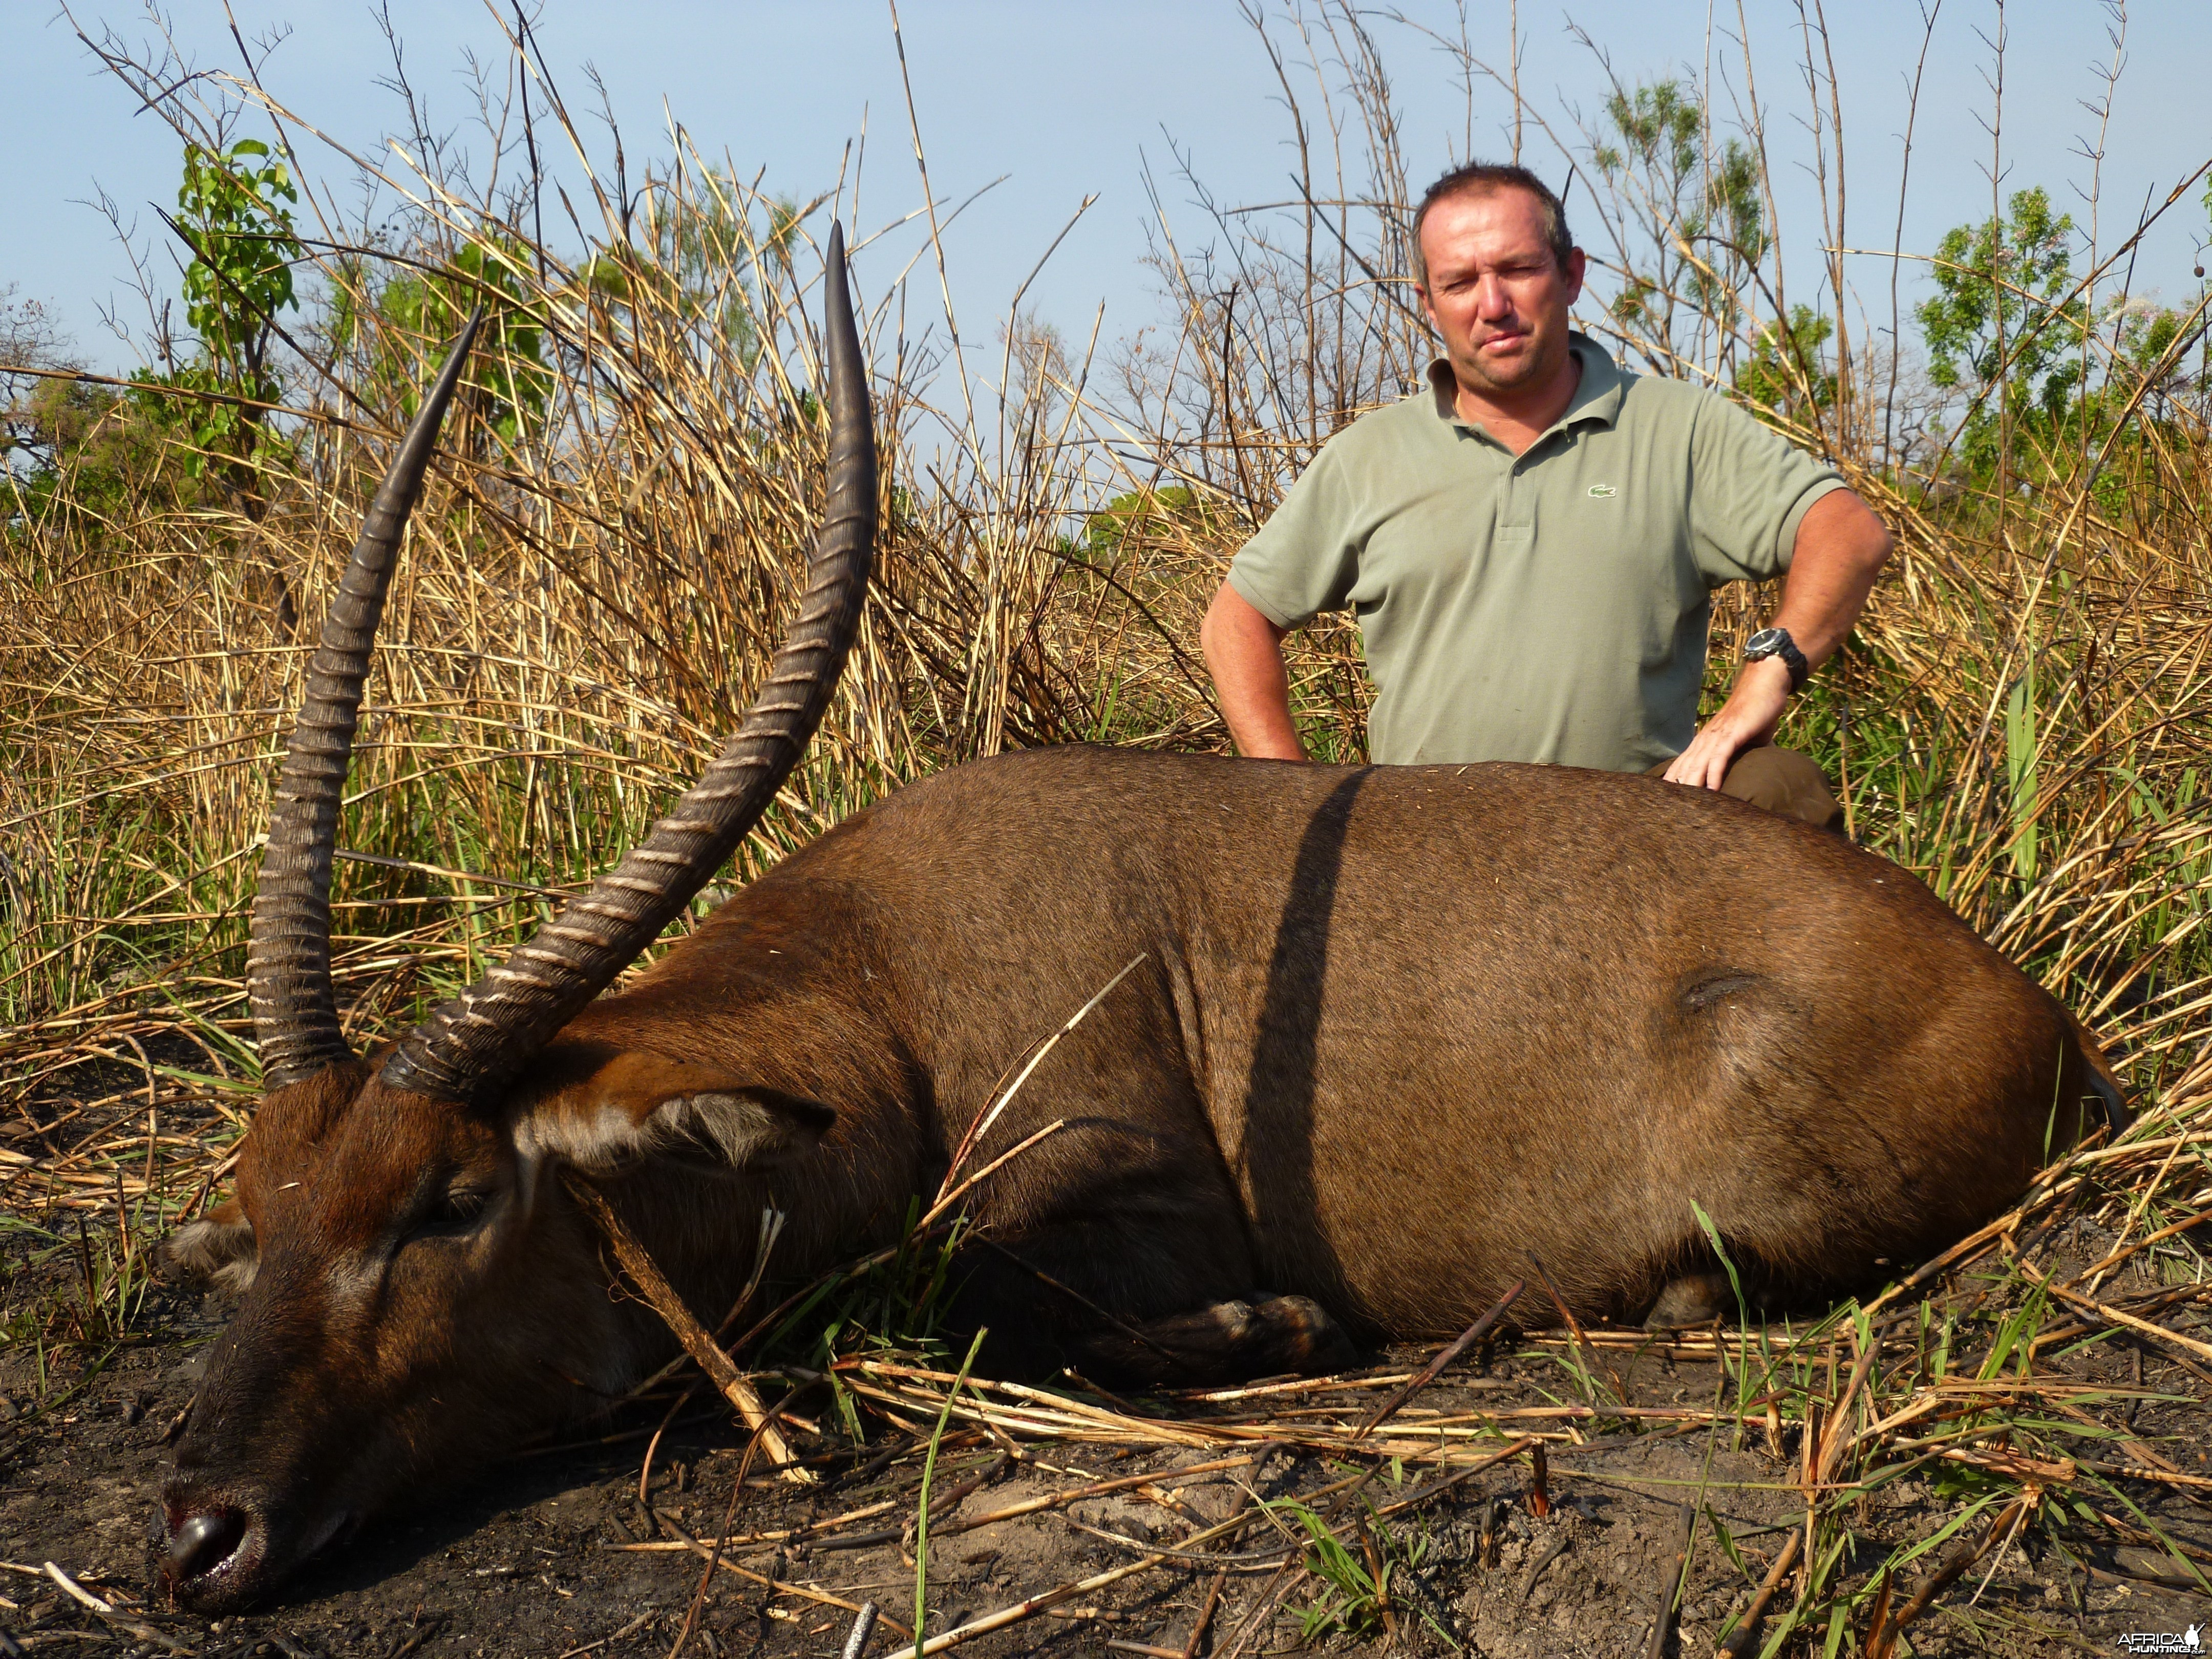 Waterbuck hunted in Central African Republic with CAWA